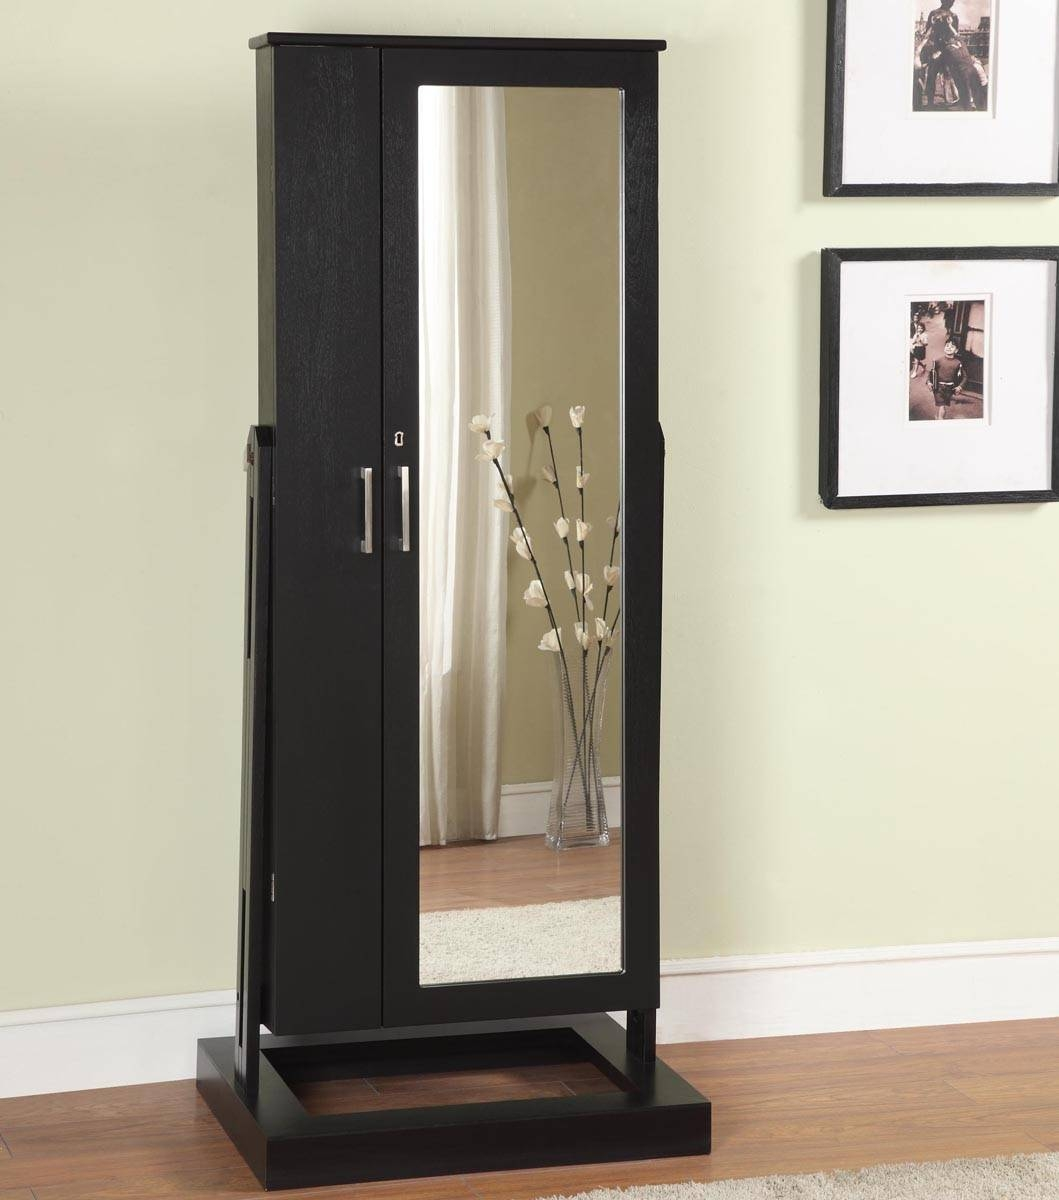 Exquisite Picture Of Furniture For Bathroom Design And Decoration regarding Black Free Standing Mirrors (Image 4 of 15)